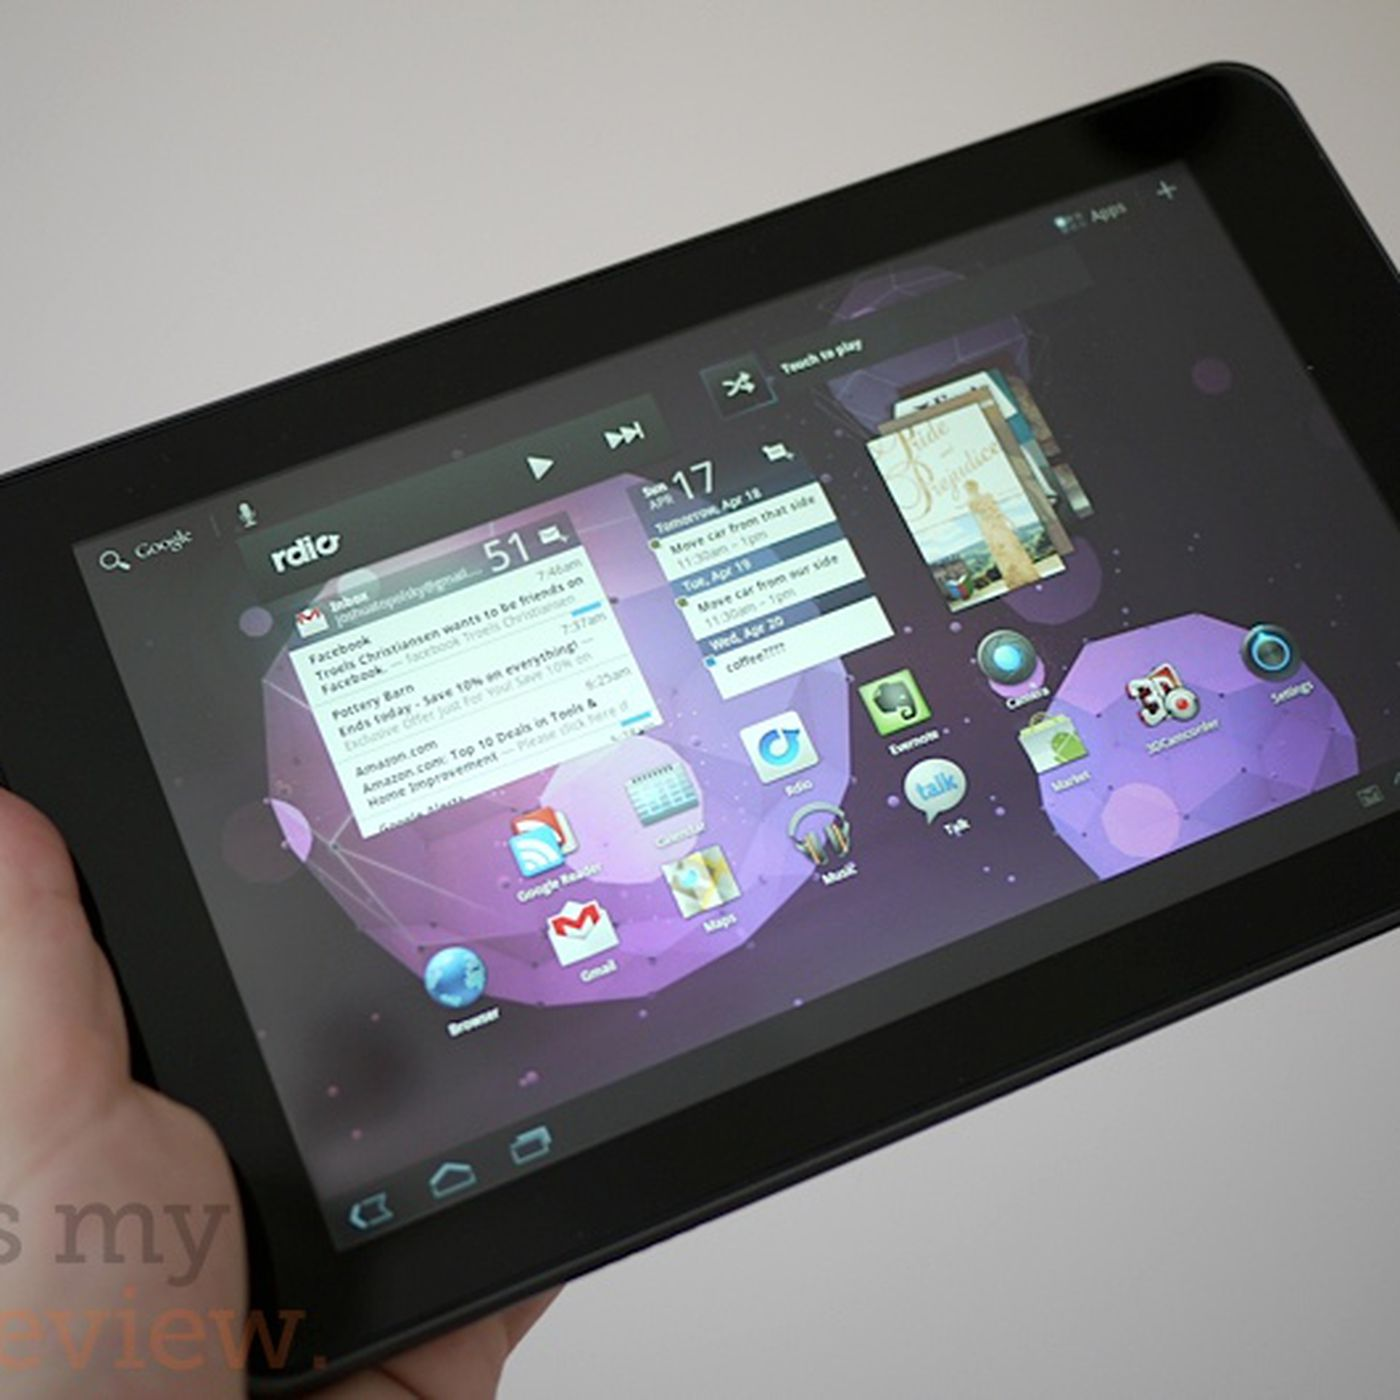 LG G-Slate review - The Verge